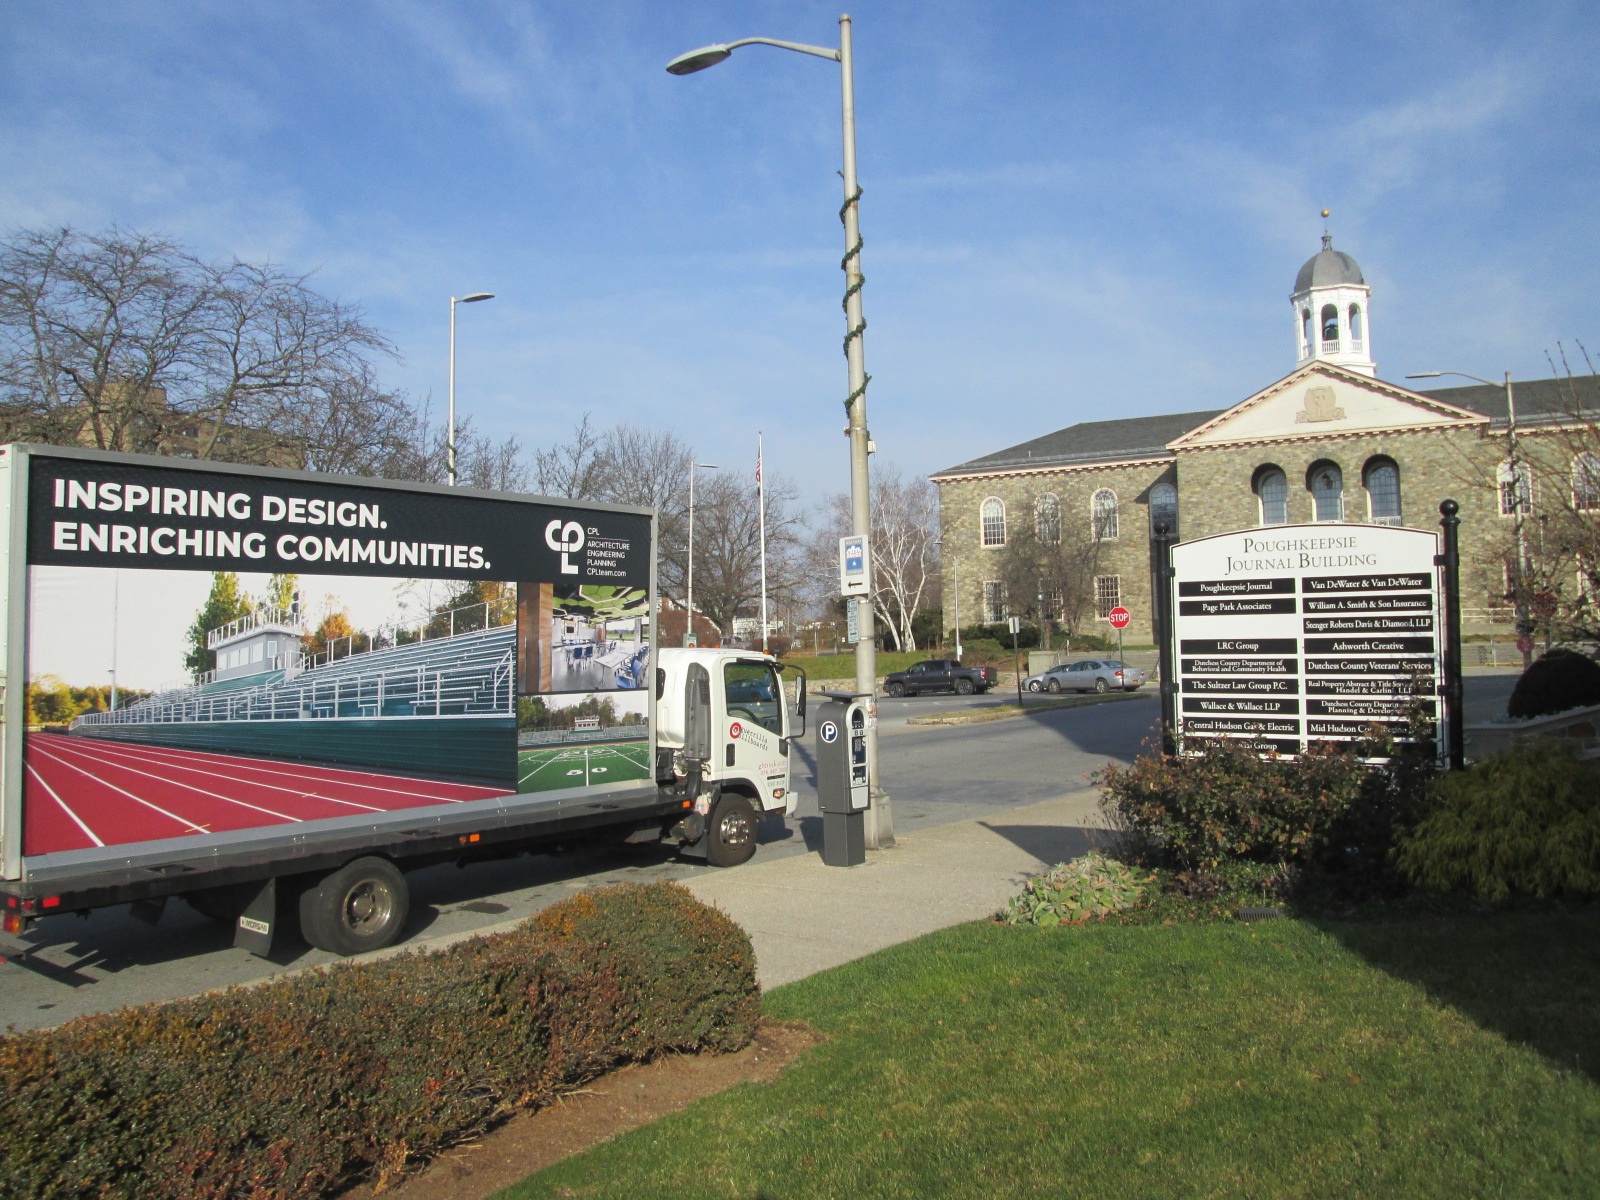 Mobile billboard stopped at the Poughkeepsie Journal Building in Poughkeepsie NY